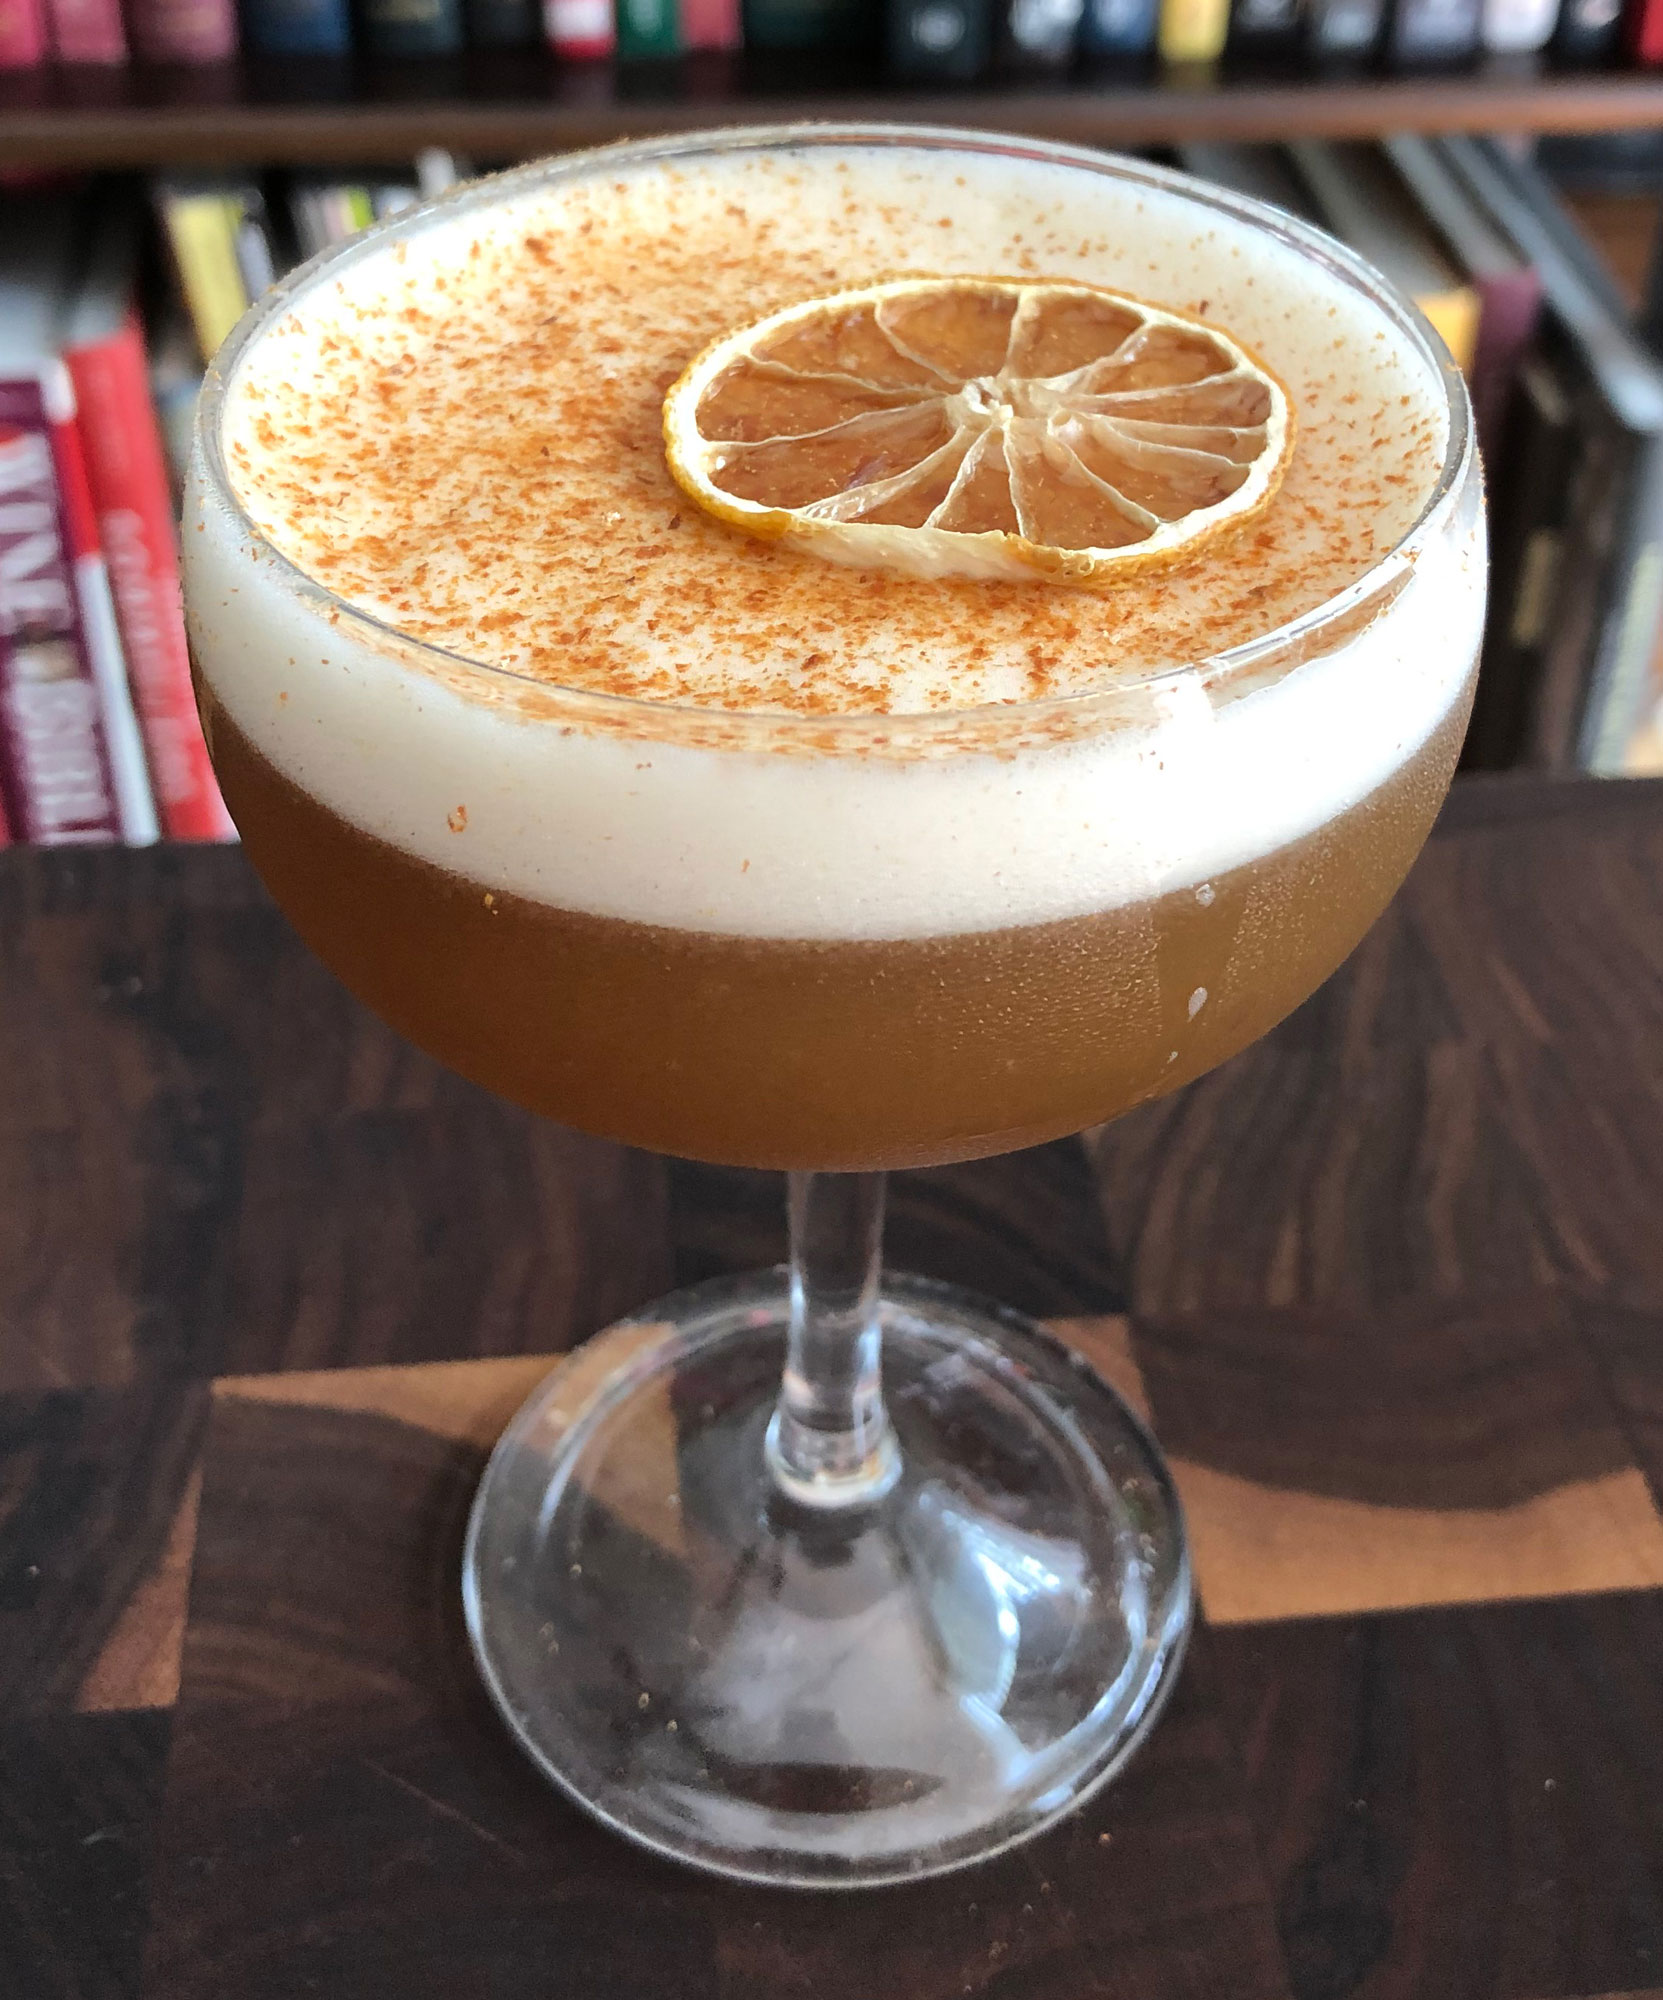 An example of the Golden Brown, the mixed drink (cocktail), by Angelica Tea Room, Buffalo NY, featuring Bonal Gentiane-Quina, rye whiskey, lemon juice, egg white, cinnamon-infused sugar syrup, and Angostura bitters; photo by Lee Edwards